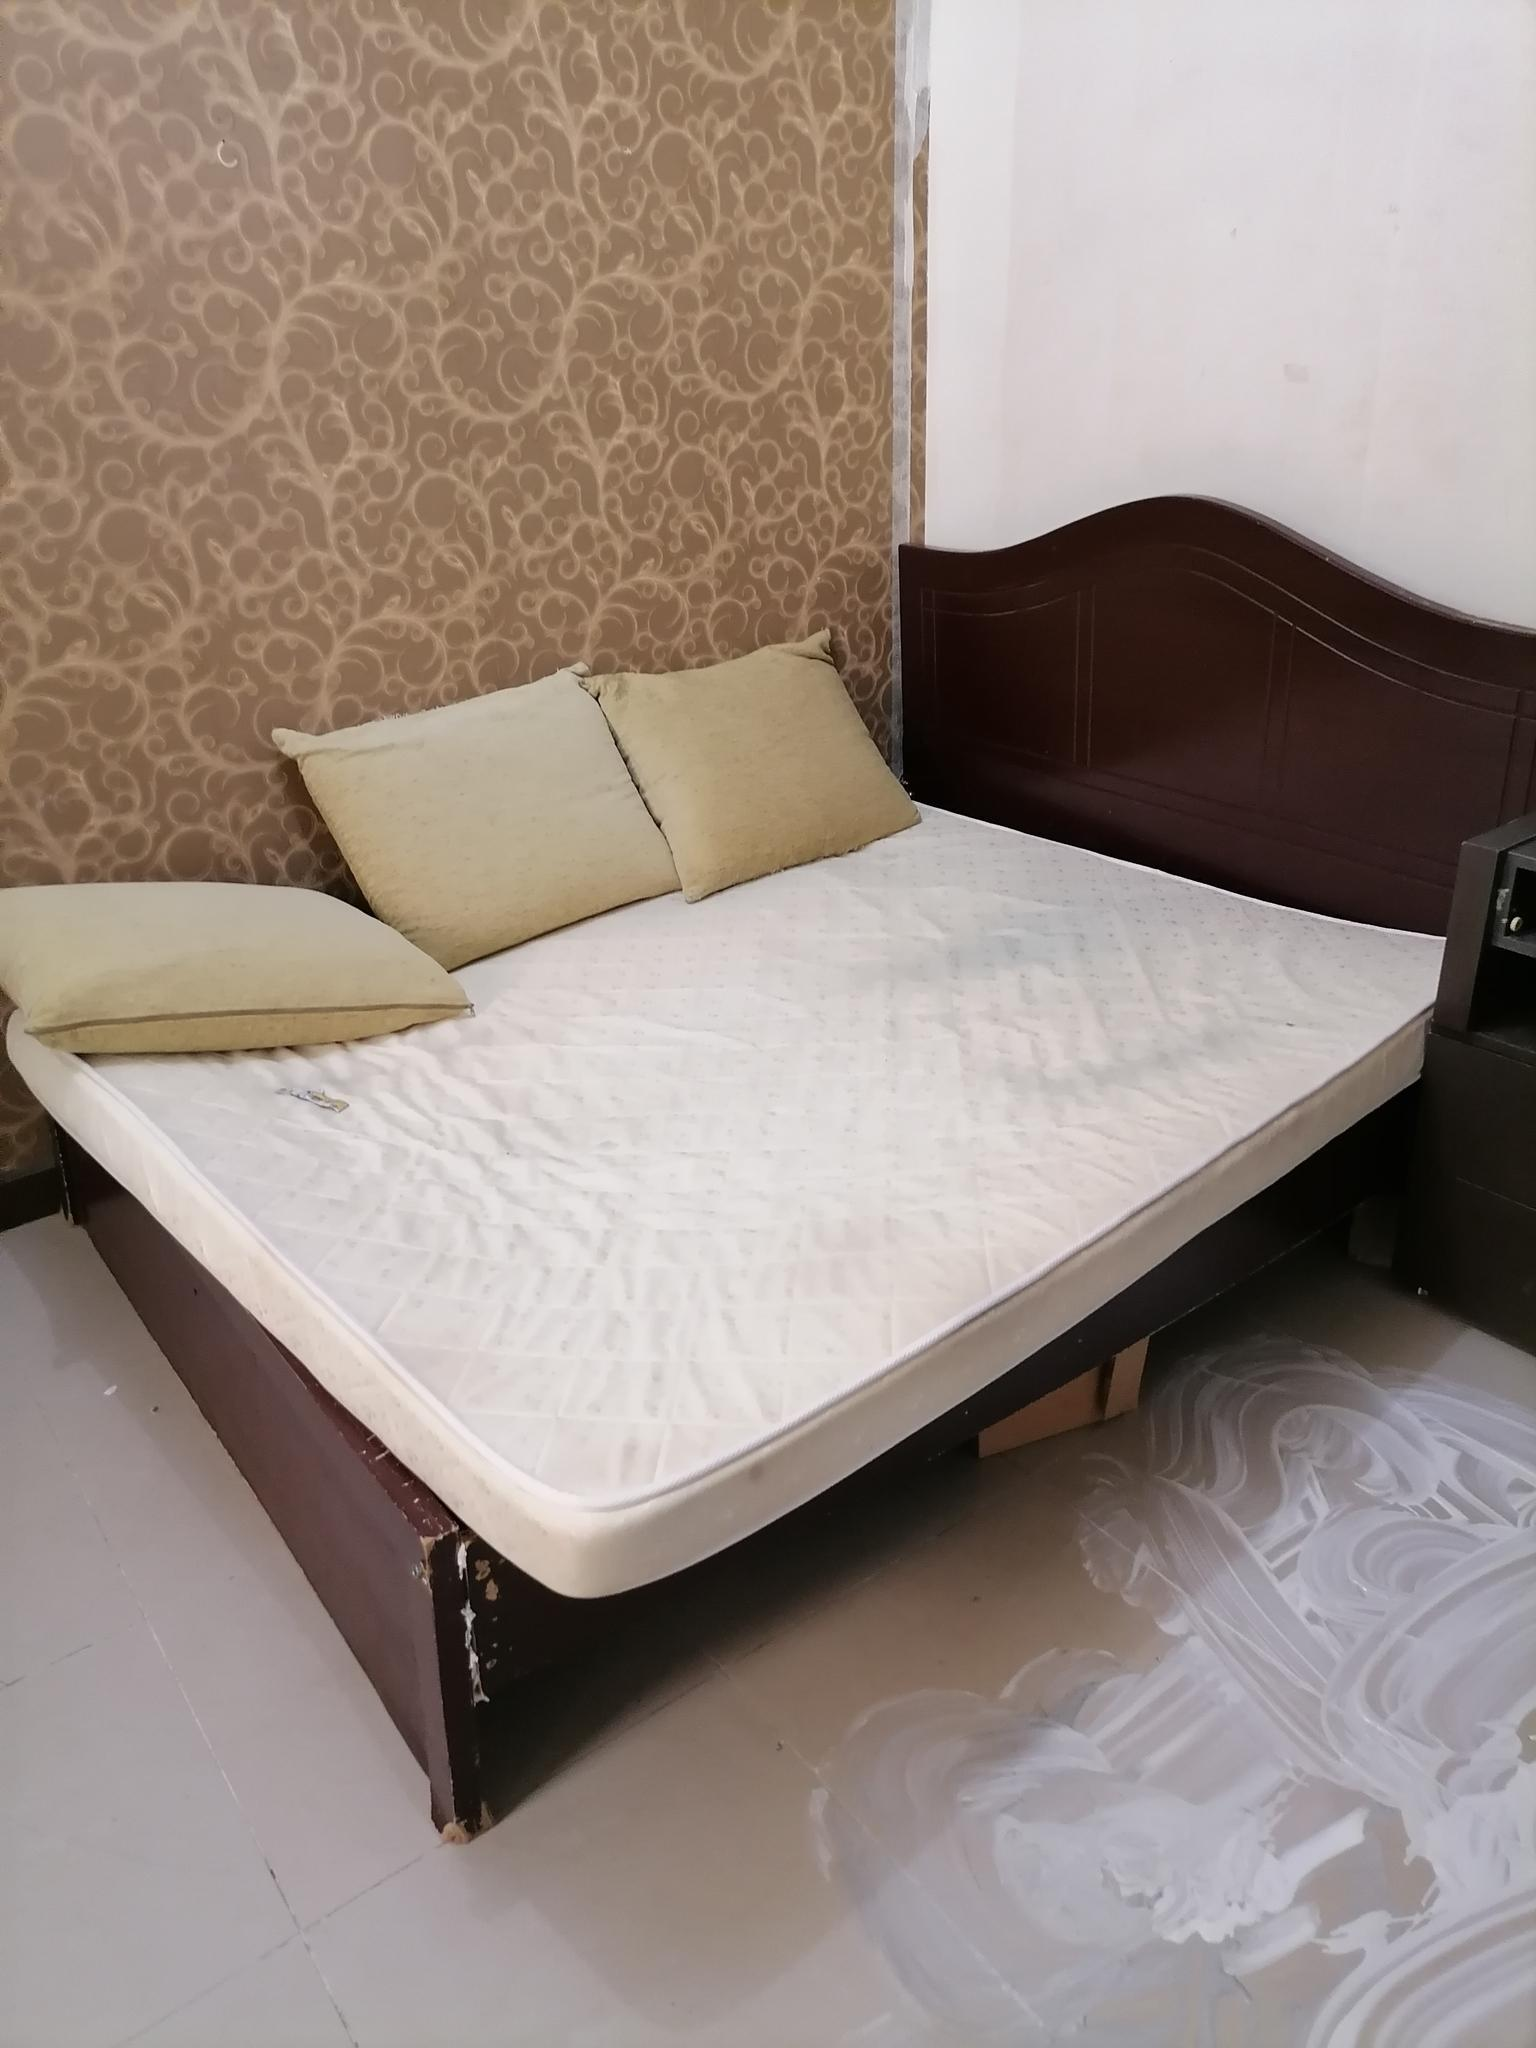 almost brand new matress (( 3 months use only))